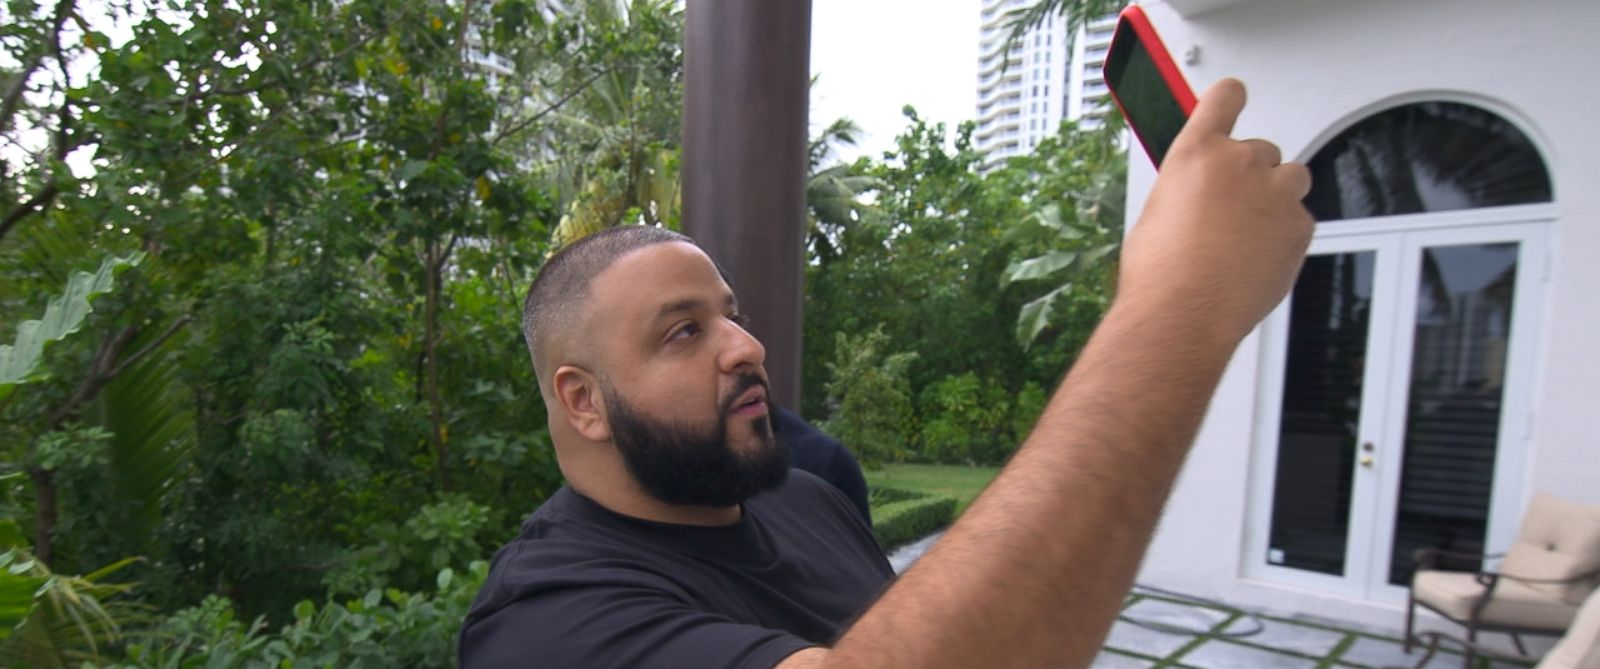 DJ Khaled, whose fame has exploded on Snapchat, is seen here in the backyard of his Miami mansion.